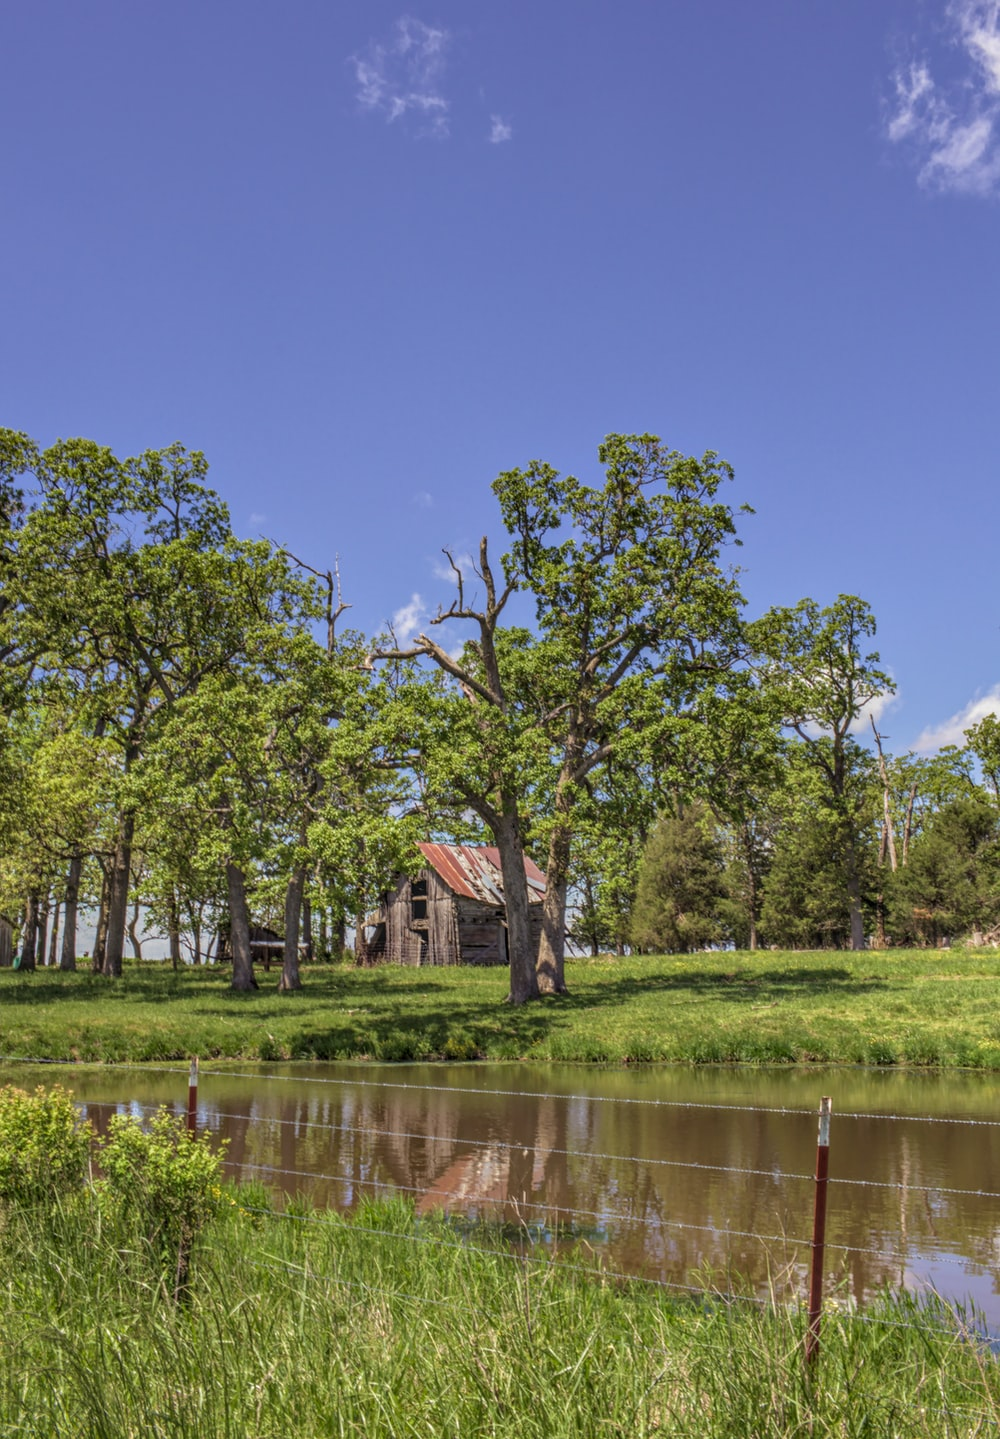 brown wooden house near green trees and river during daytime